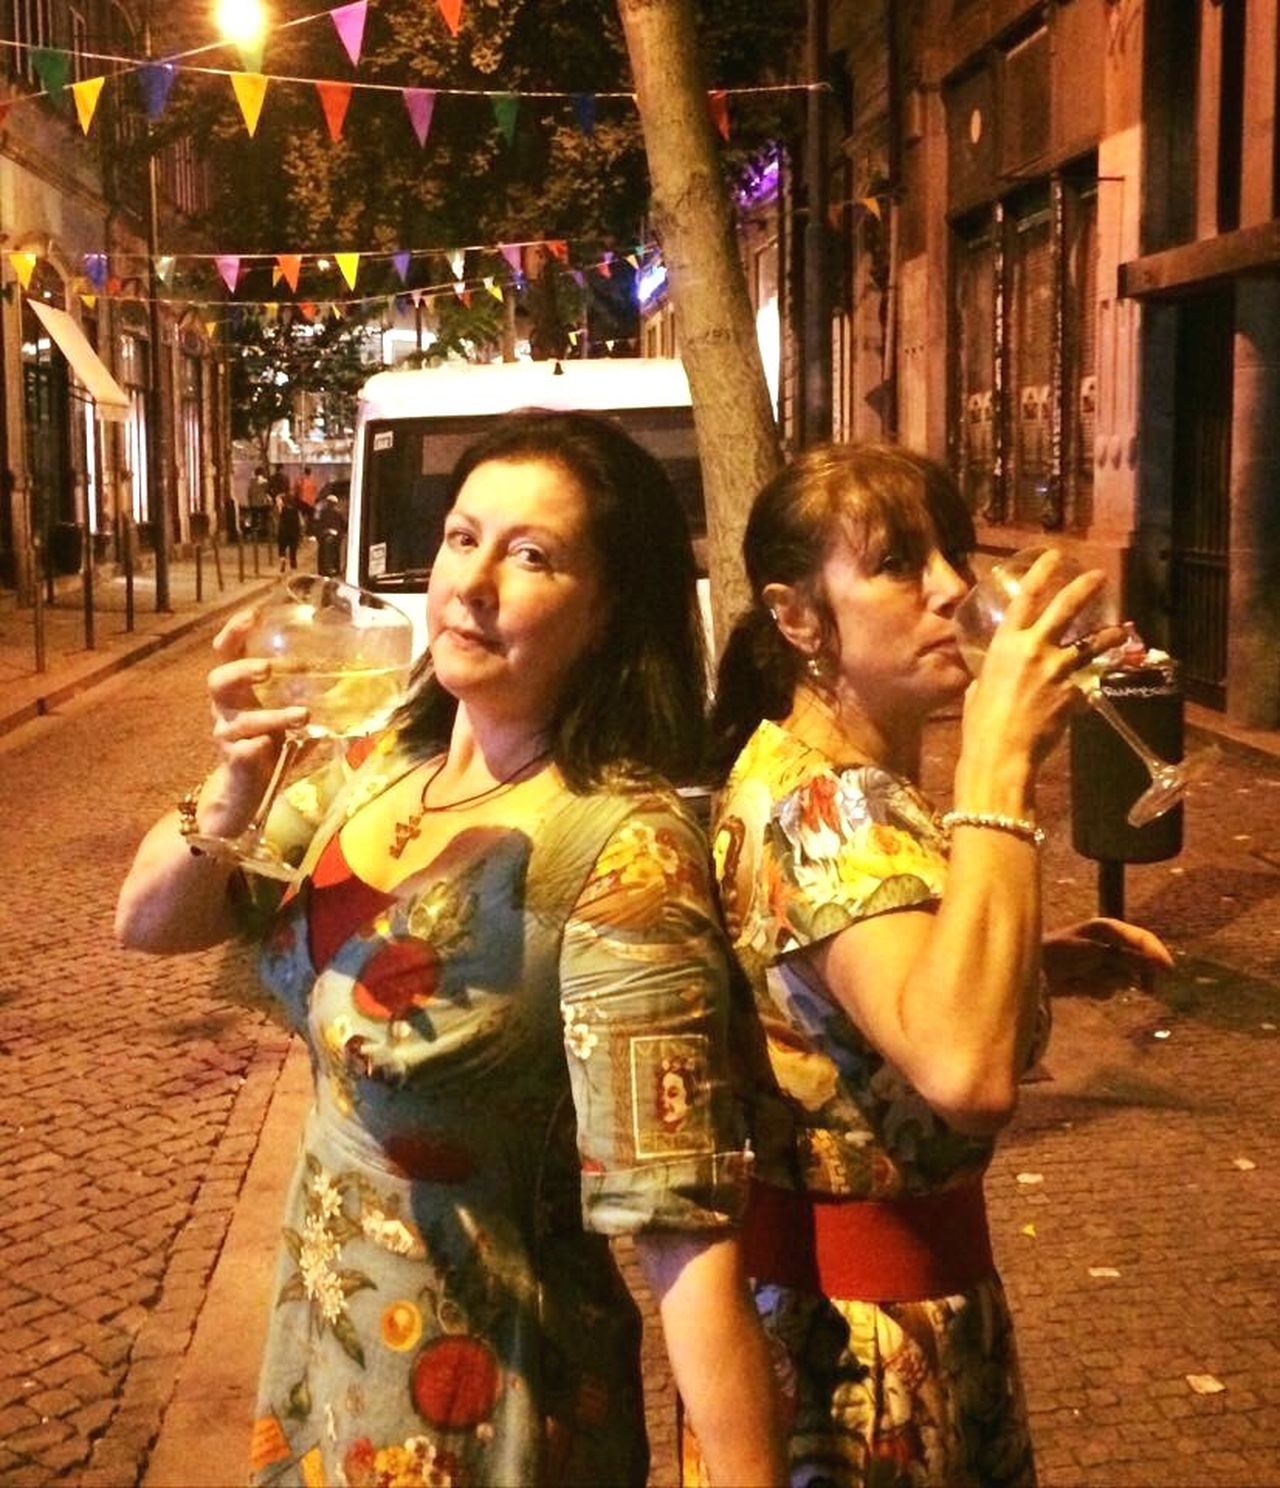 People And Places My sister and I at the Festival Sao Joao in Porto Festival Portugal Porto Drinking Gin Tonic People And Places.